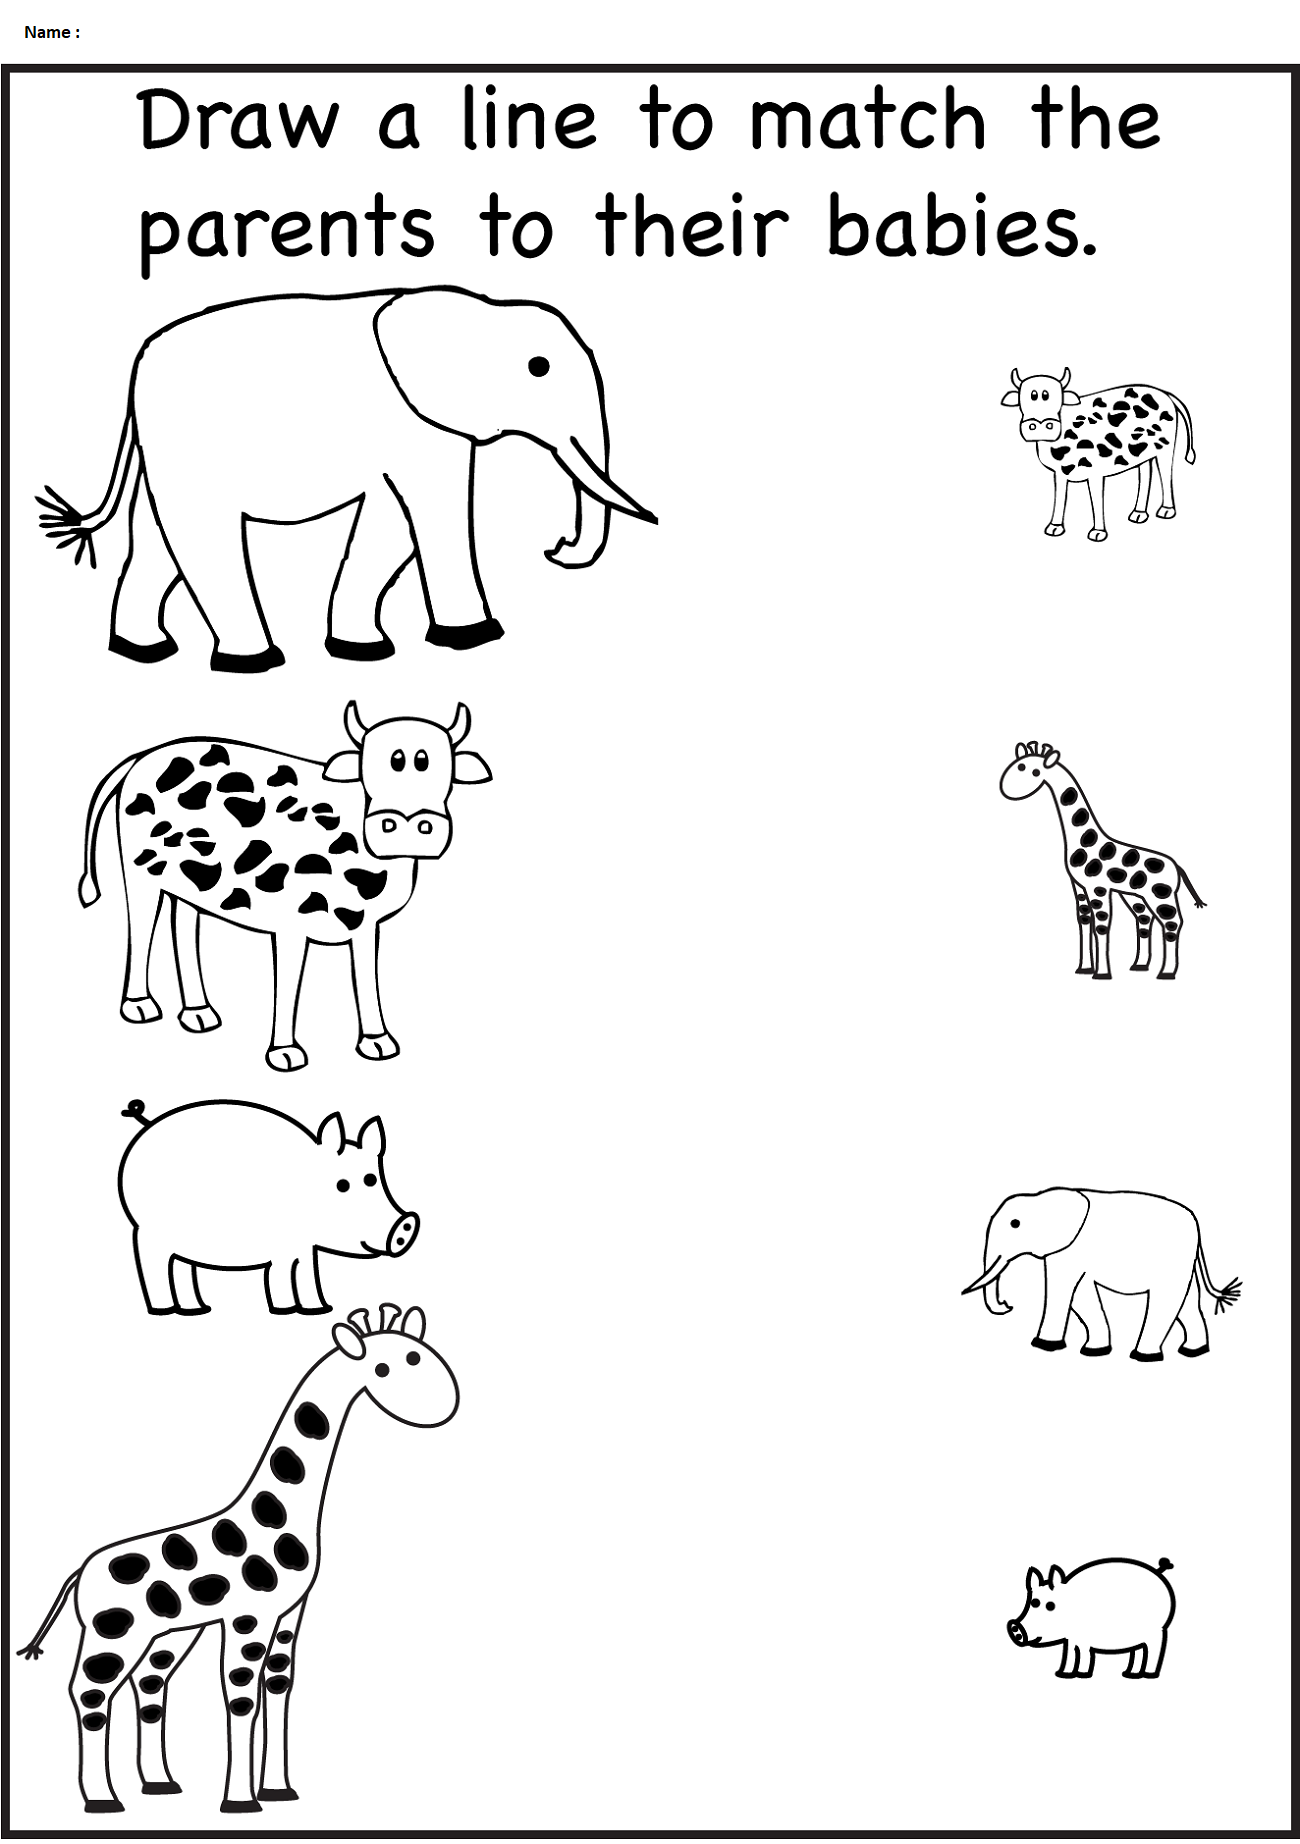 Worksheet for Nursery Class | Learning Printable